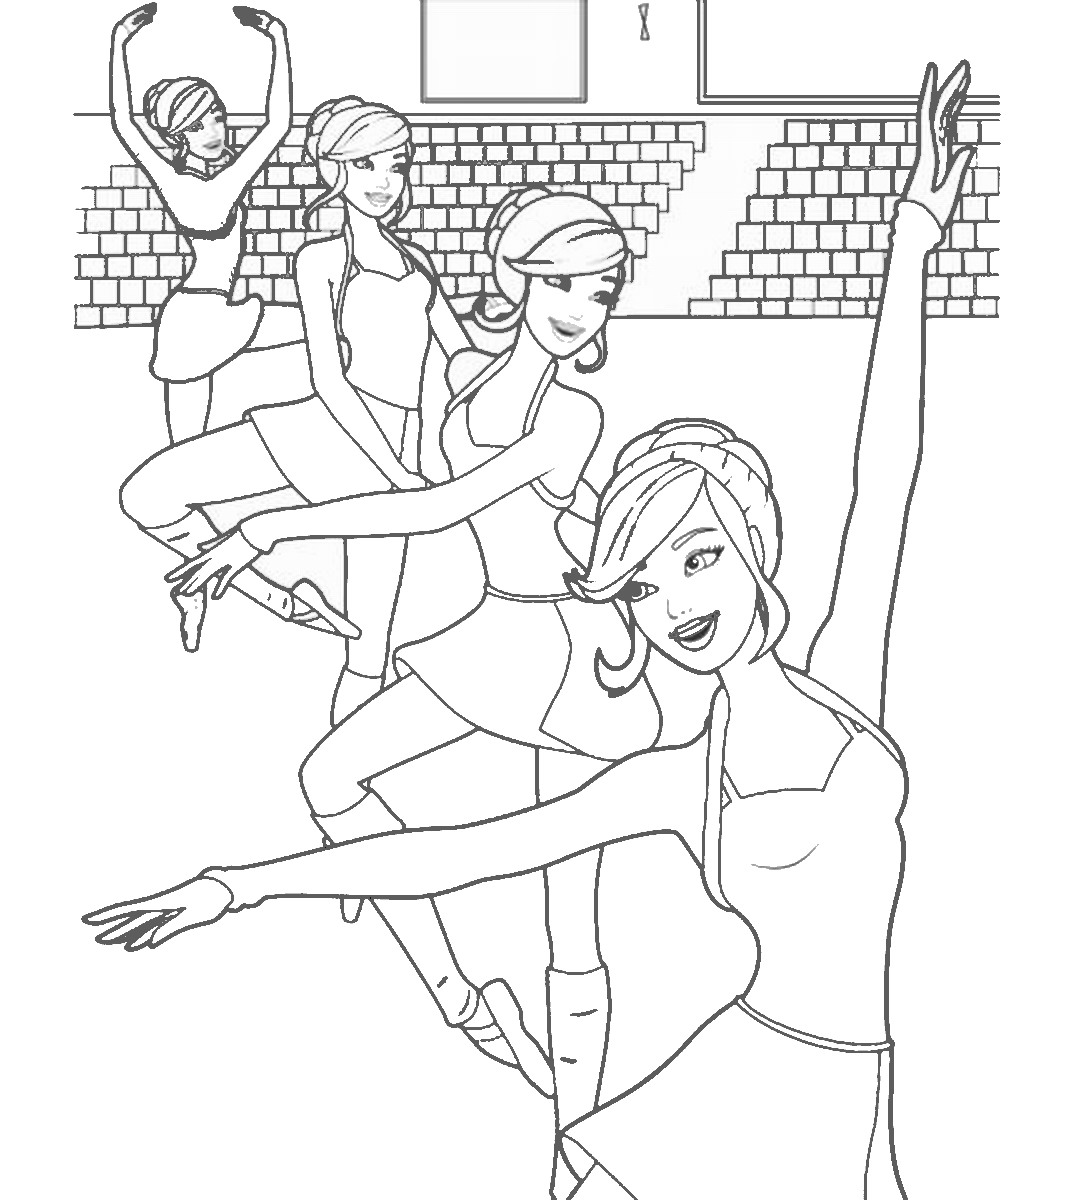 ballet coloring pictures ballet coloring pages to download and print for free pictures ballet coloring